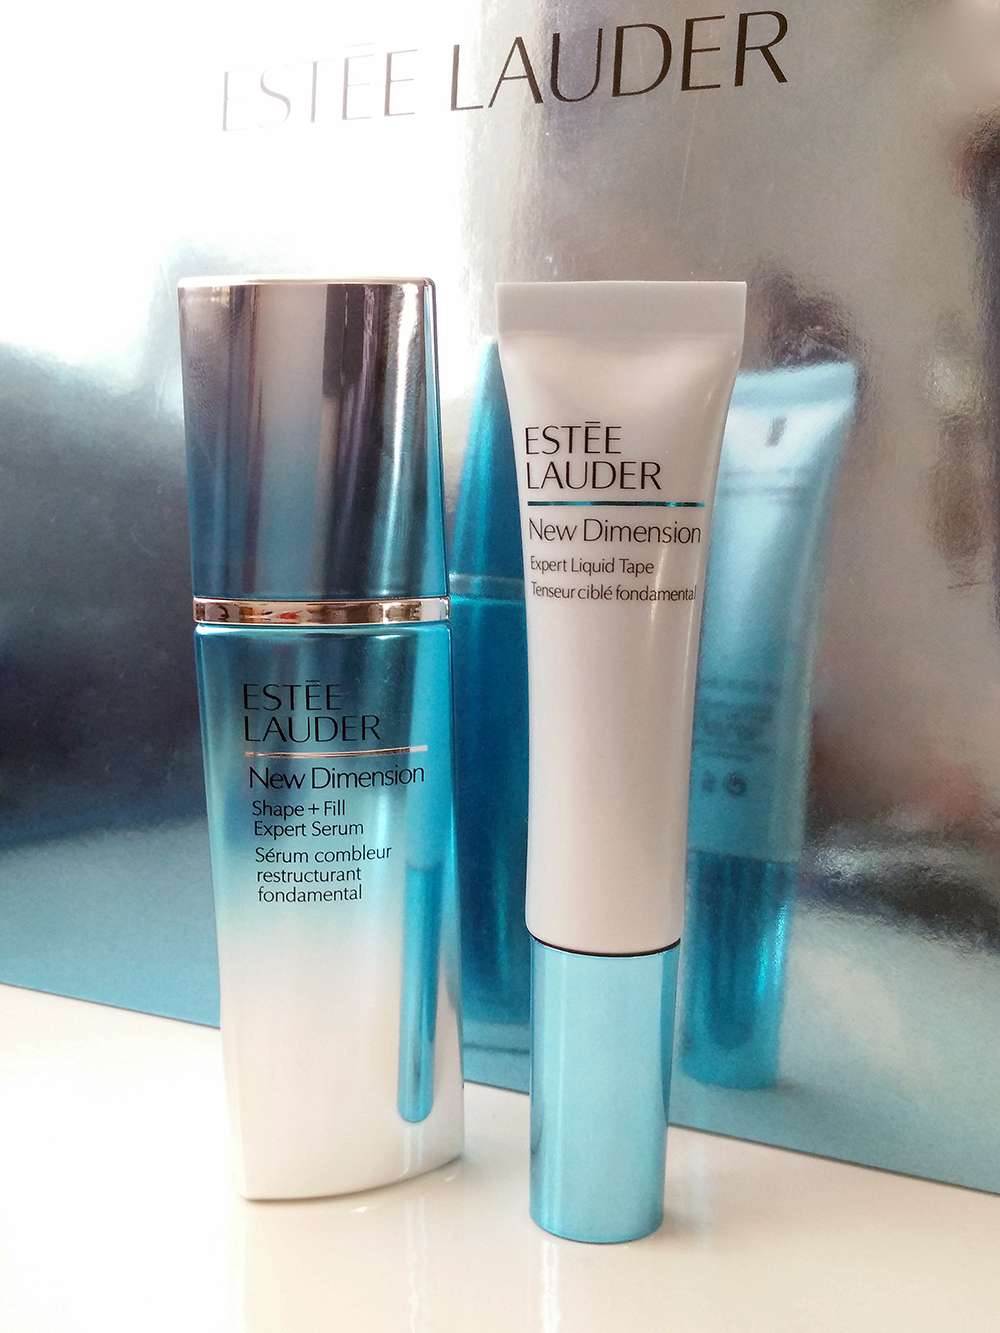 Estee Lauder new dimension shape + fill expert serum expert liquid tape